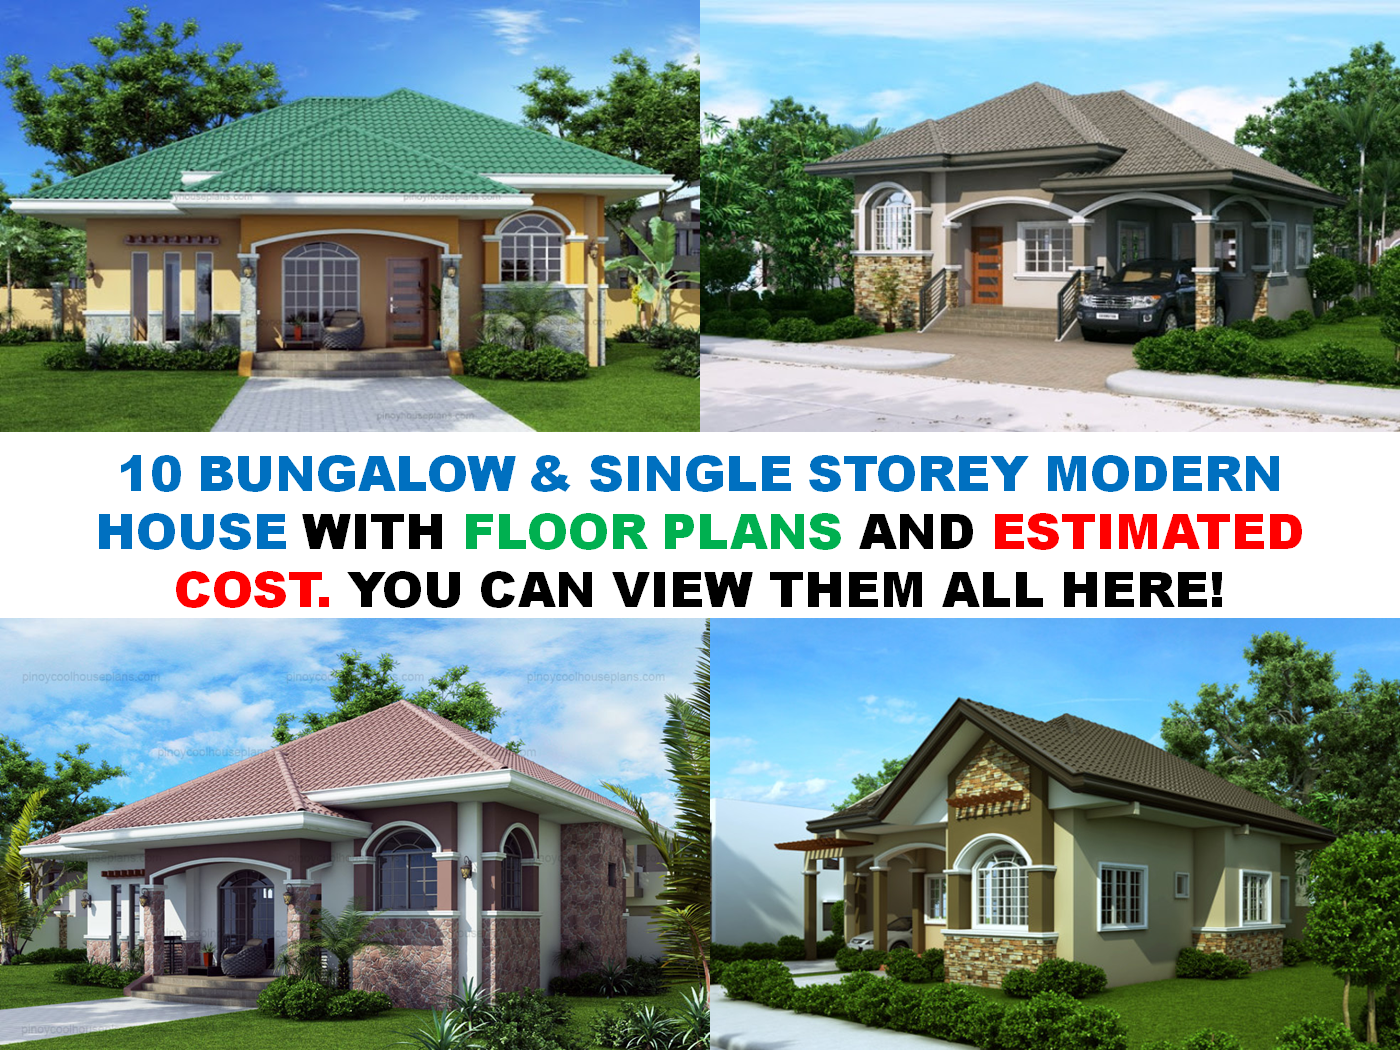 10 bungalow single story modern house with floor plans for House design online